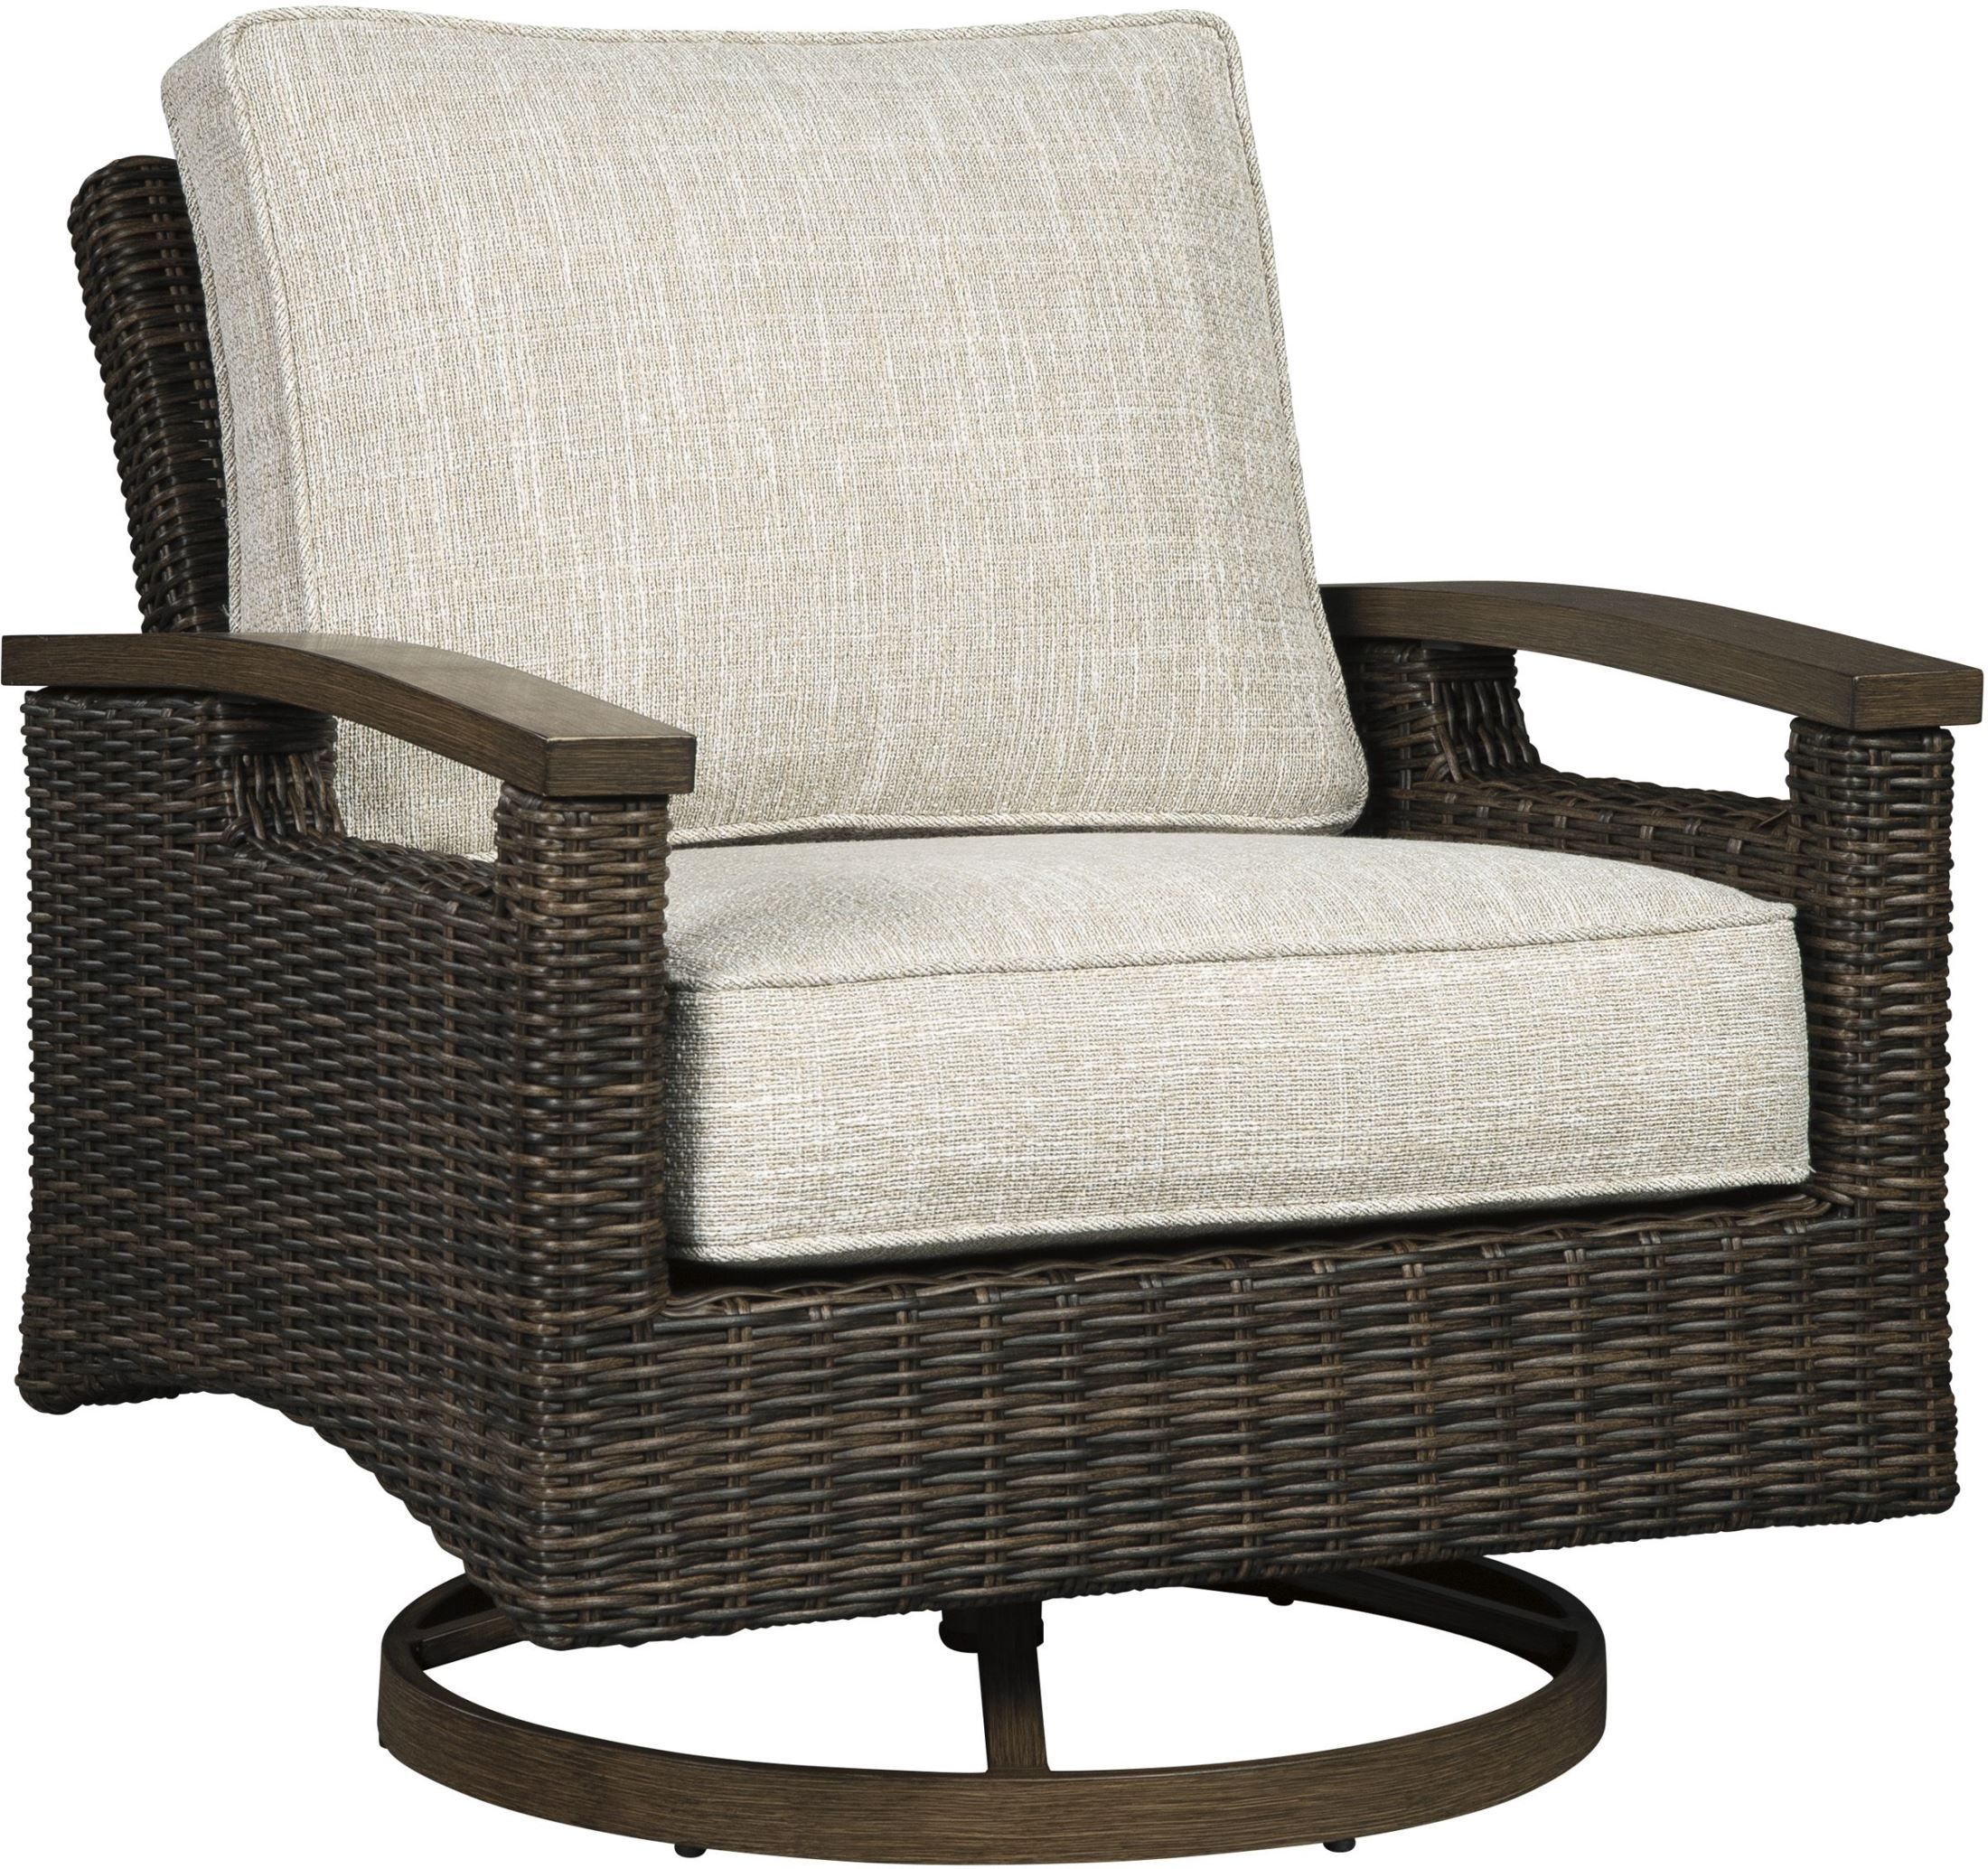 Beachcroft Beige Outdoor Living Room Set With Cushion In 2020 Patio Lounge Chairs Contemporary Lounge Chair Brown Lounge